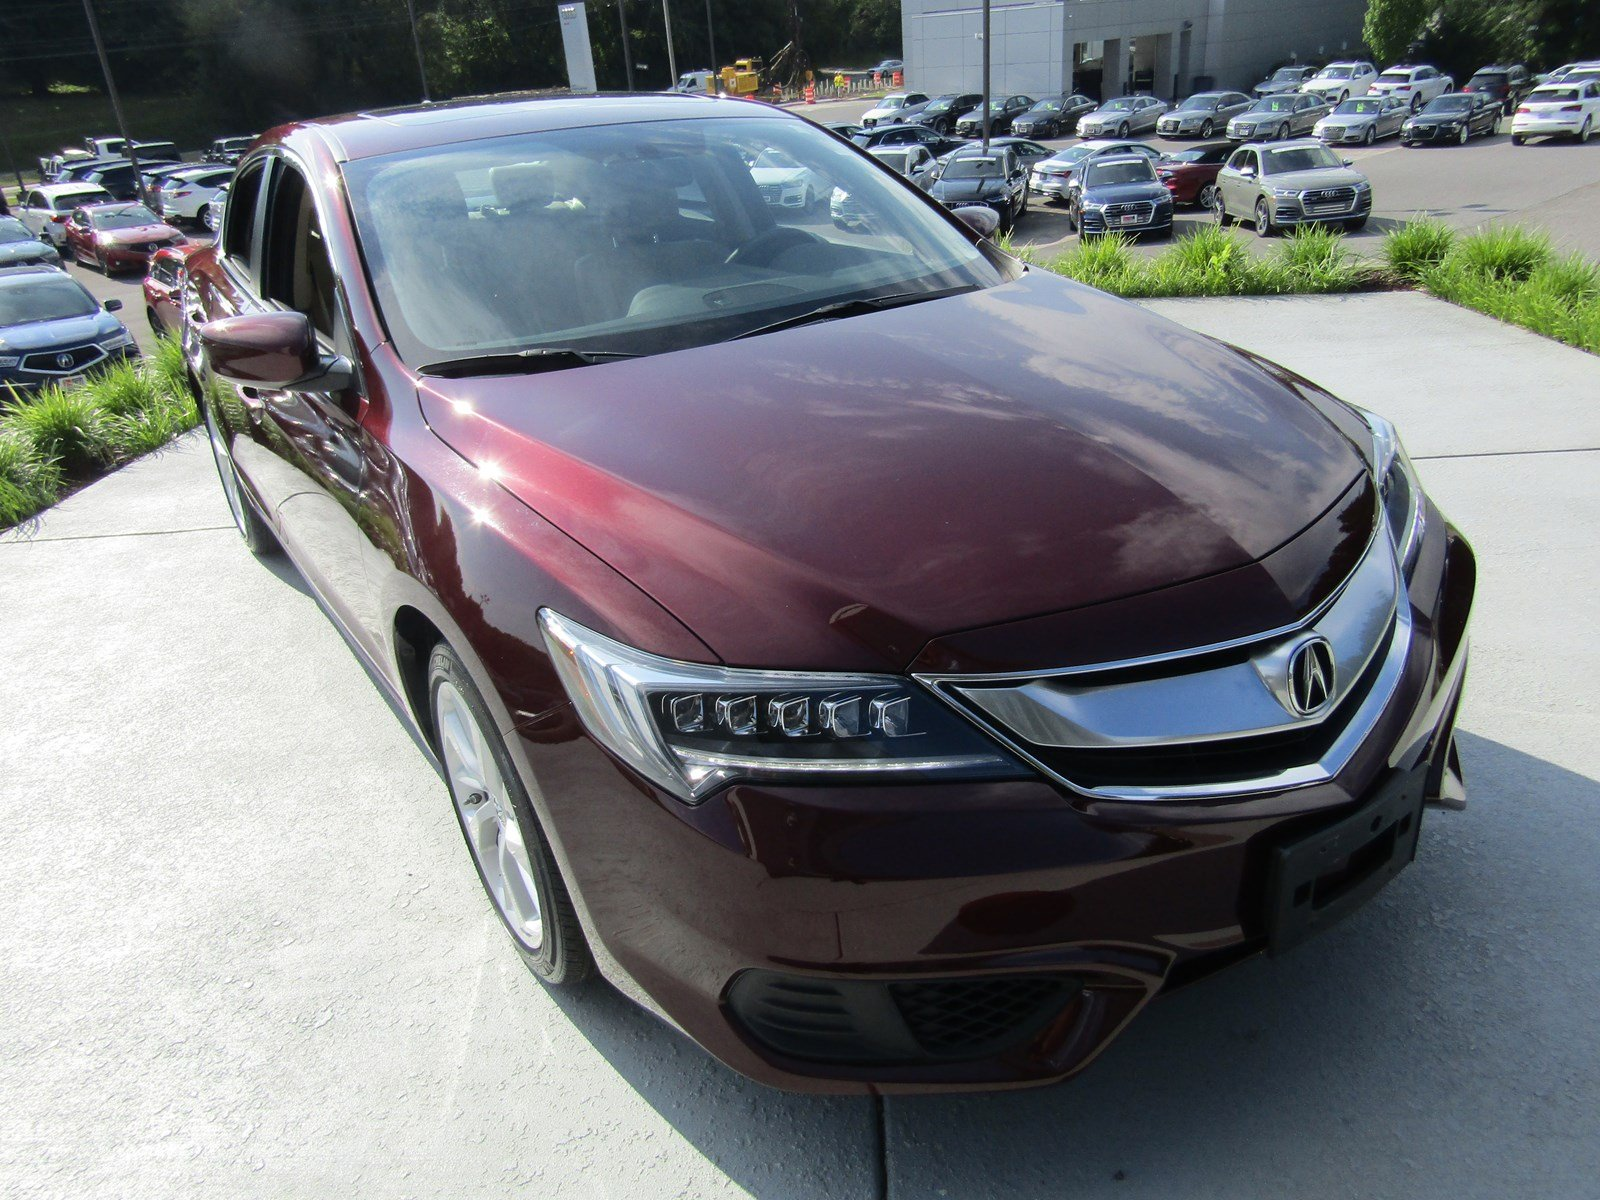 Featured Pre Owned 2016 Acura ILX 2.4L (A8) Sedan for sale near you in Roanoke, VA